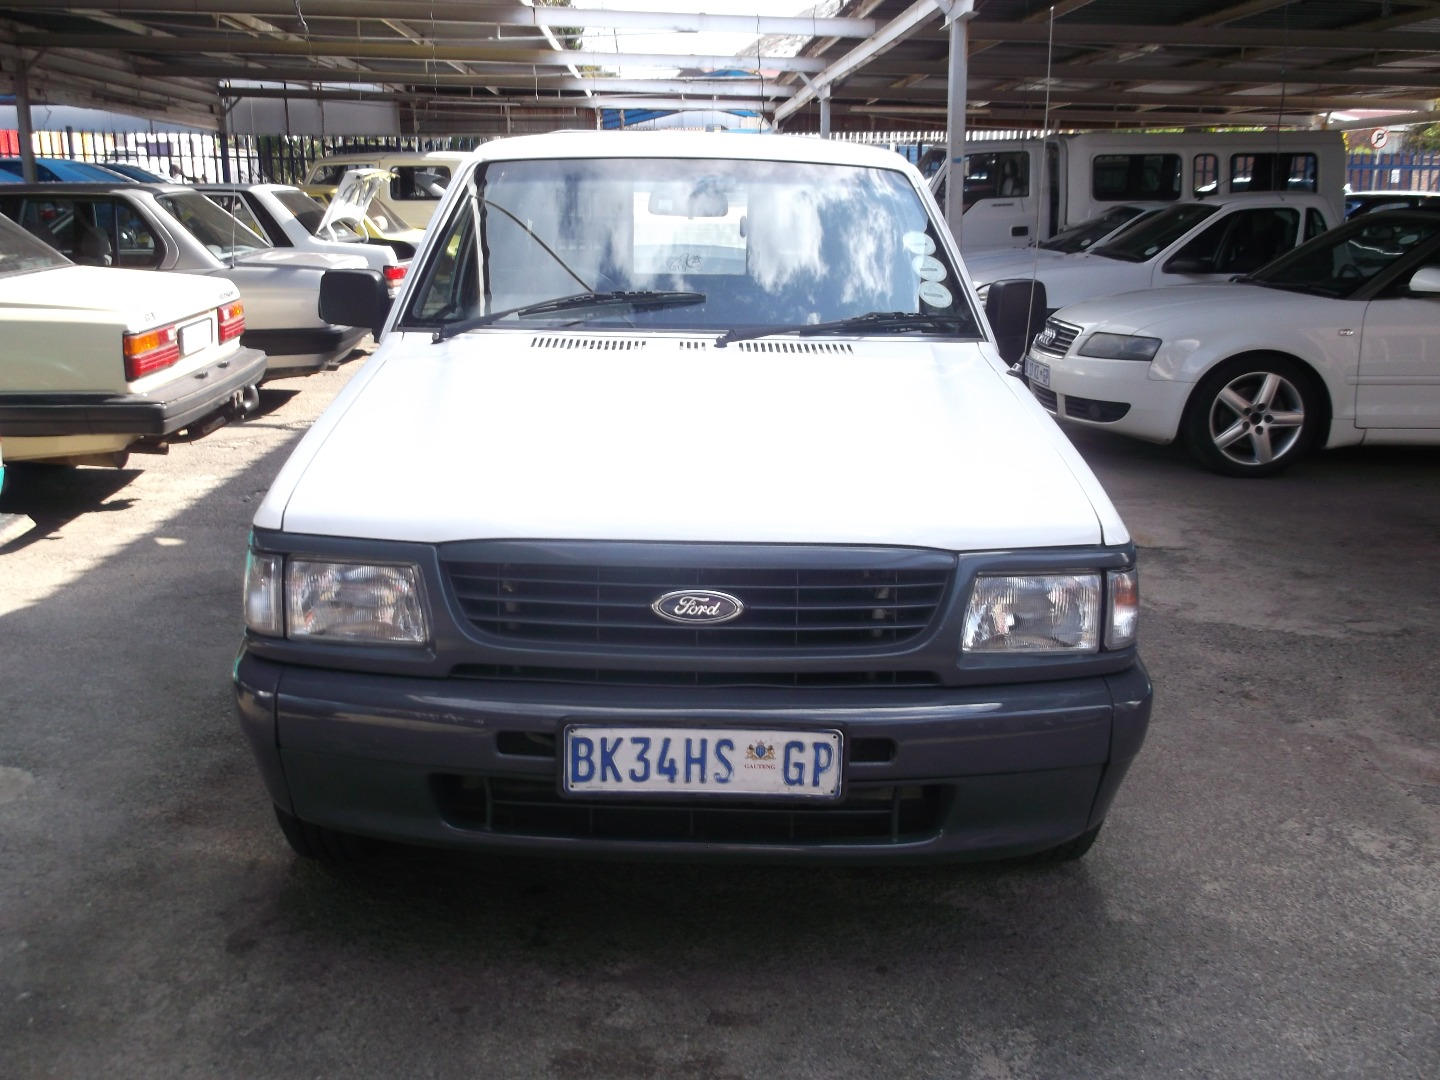 Ford courier 1990 photo - 3